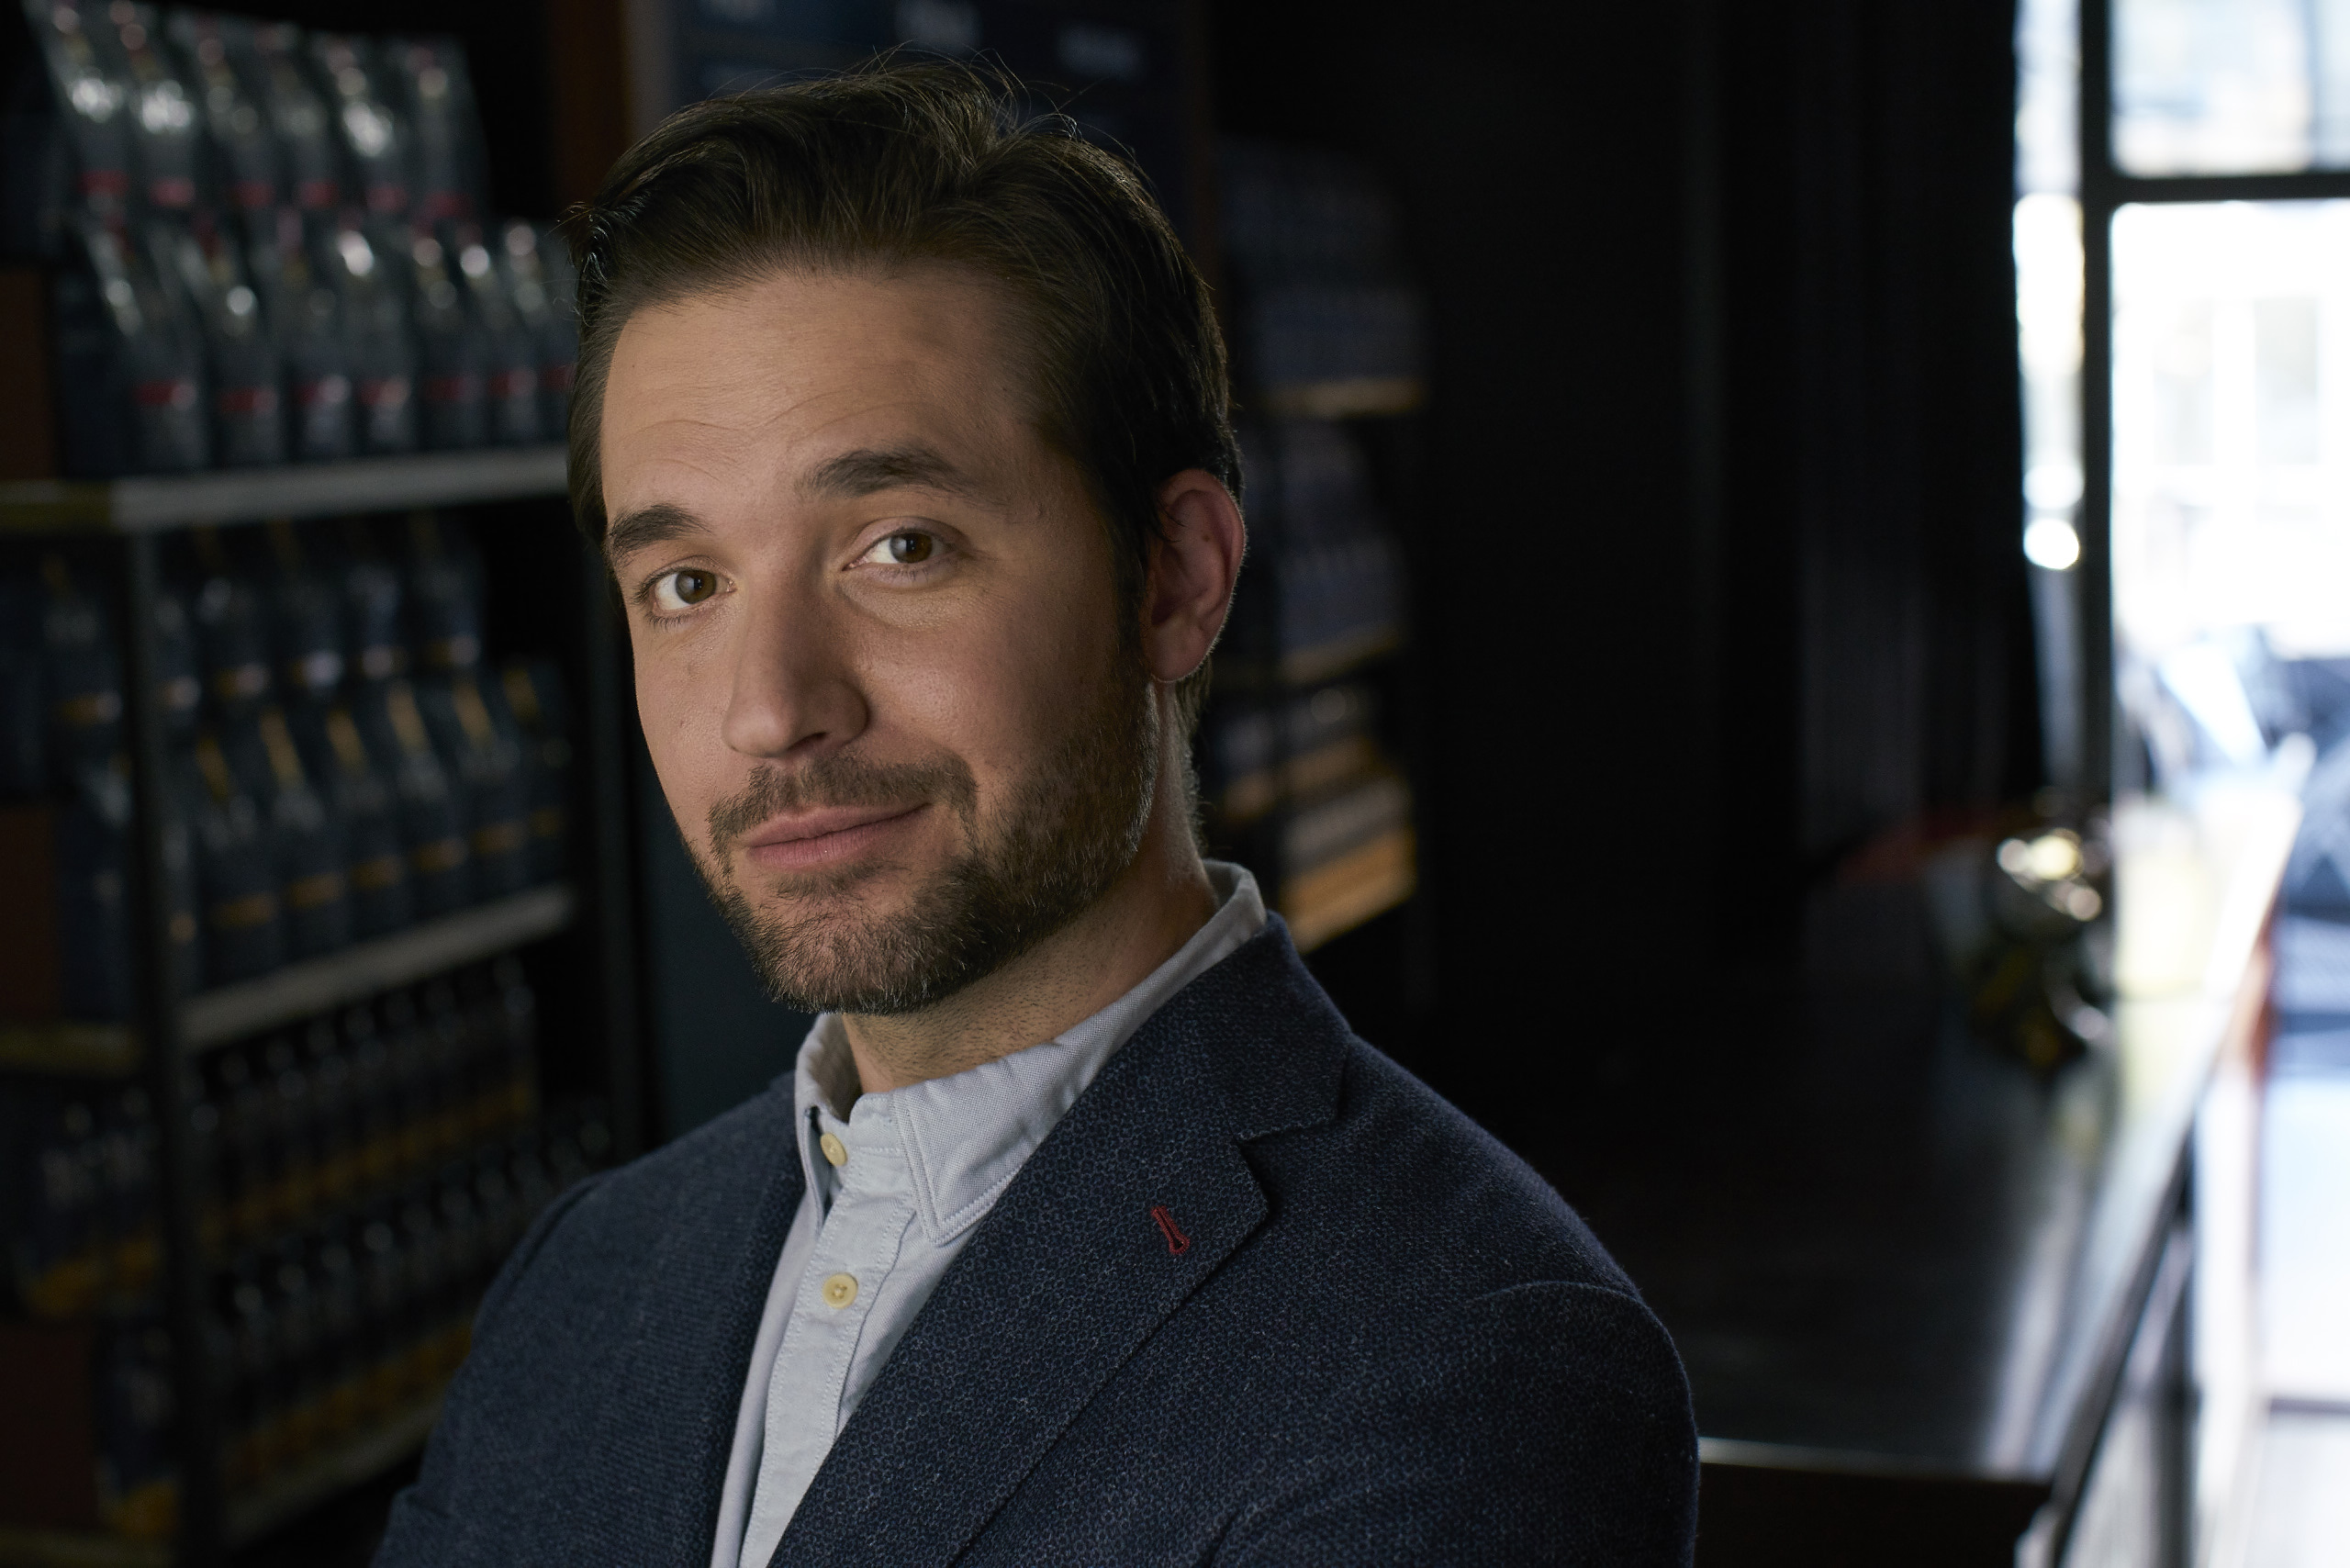 Alexis Ohanian, Initialized Capital and Reddit co-founder, mentors young entrepreneurs competing for an opportunity to fund their enterprising ideas from 1850™ Brand Coffee.